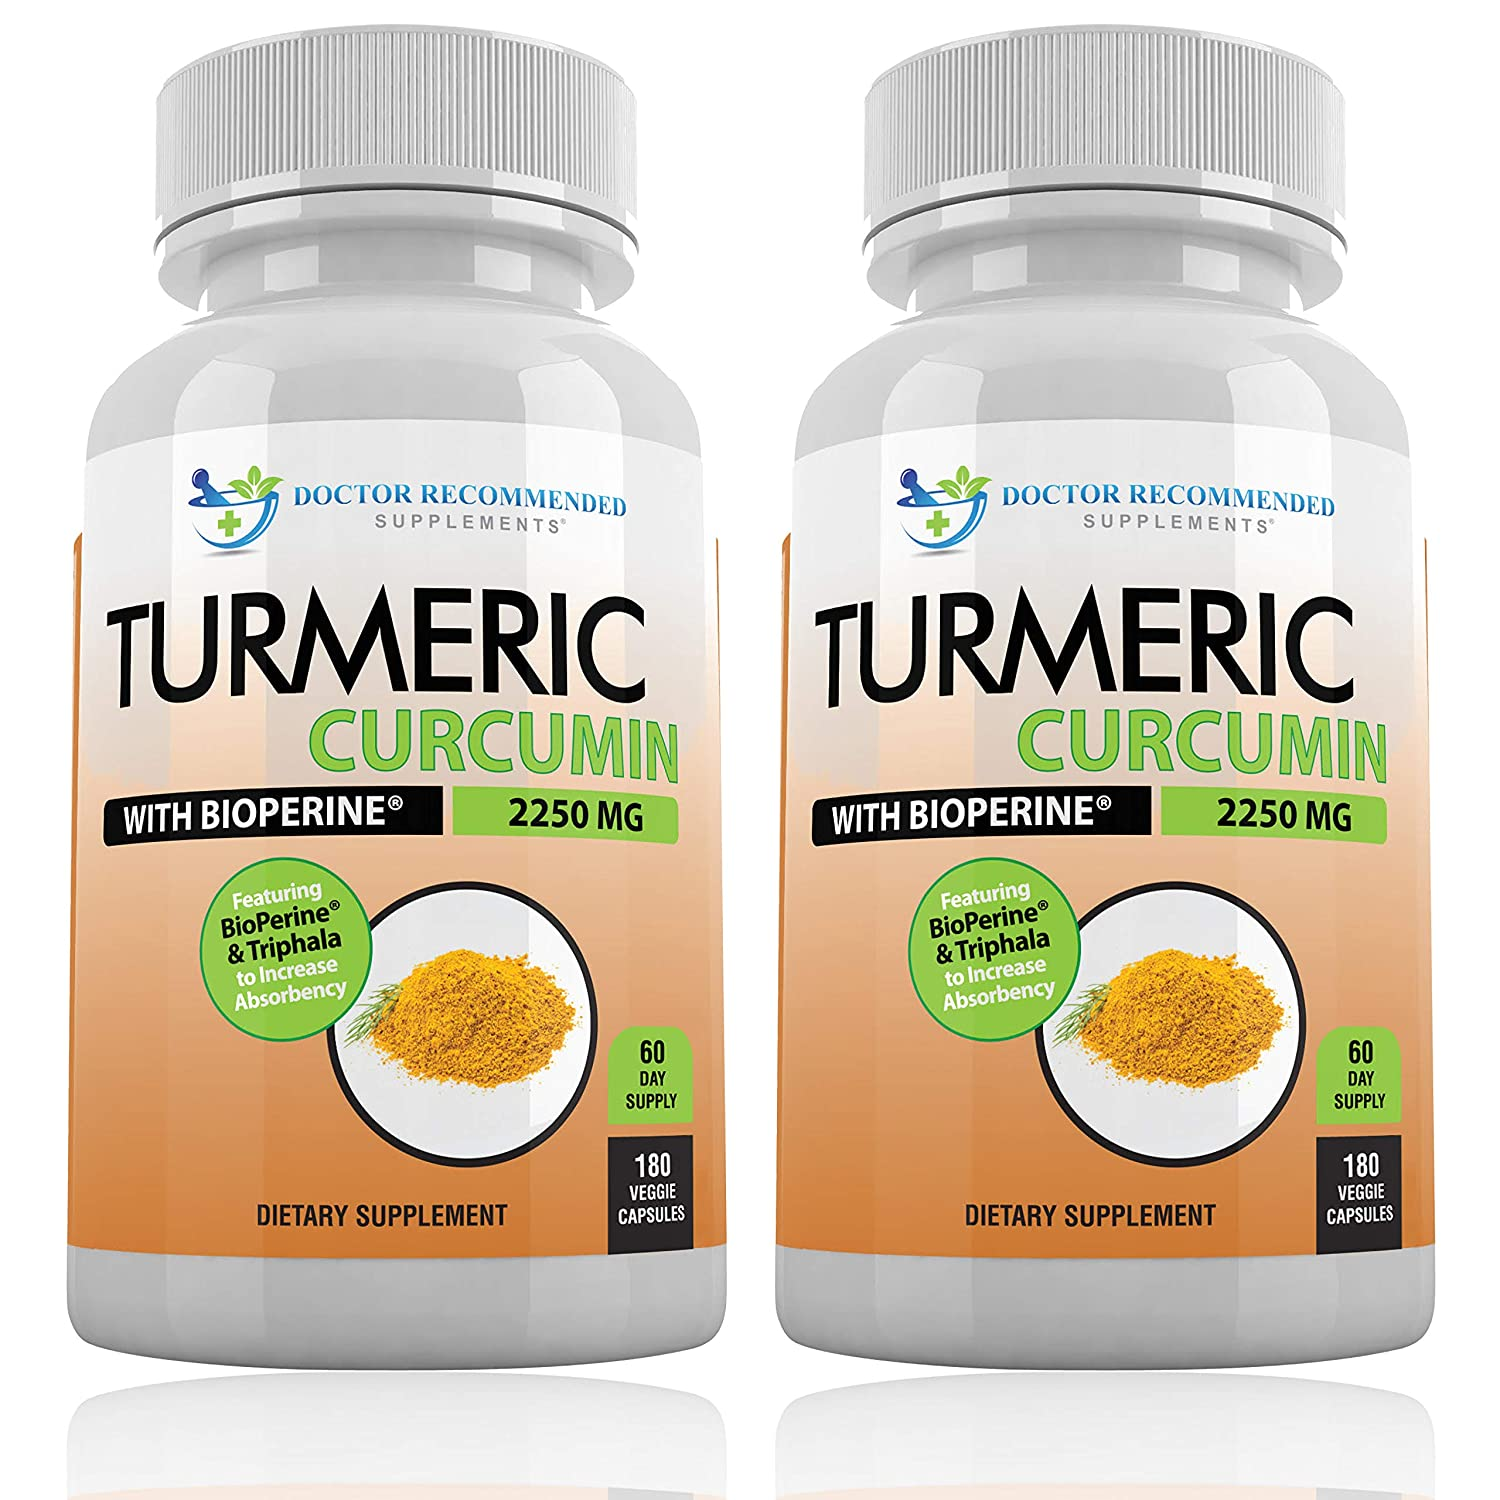 Turmeric Curcumin with Bioperine – 360 Veggie Caps – 2250mg 95 Curcuminoids Highest Max Potency with Black Pepper for Anti-Inflammatory Joint Pain Relief Pills – 100 Organic Supplement with Triphala